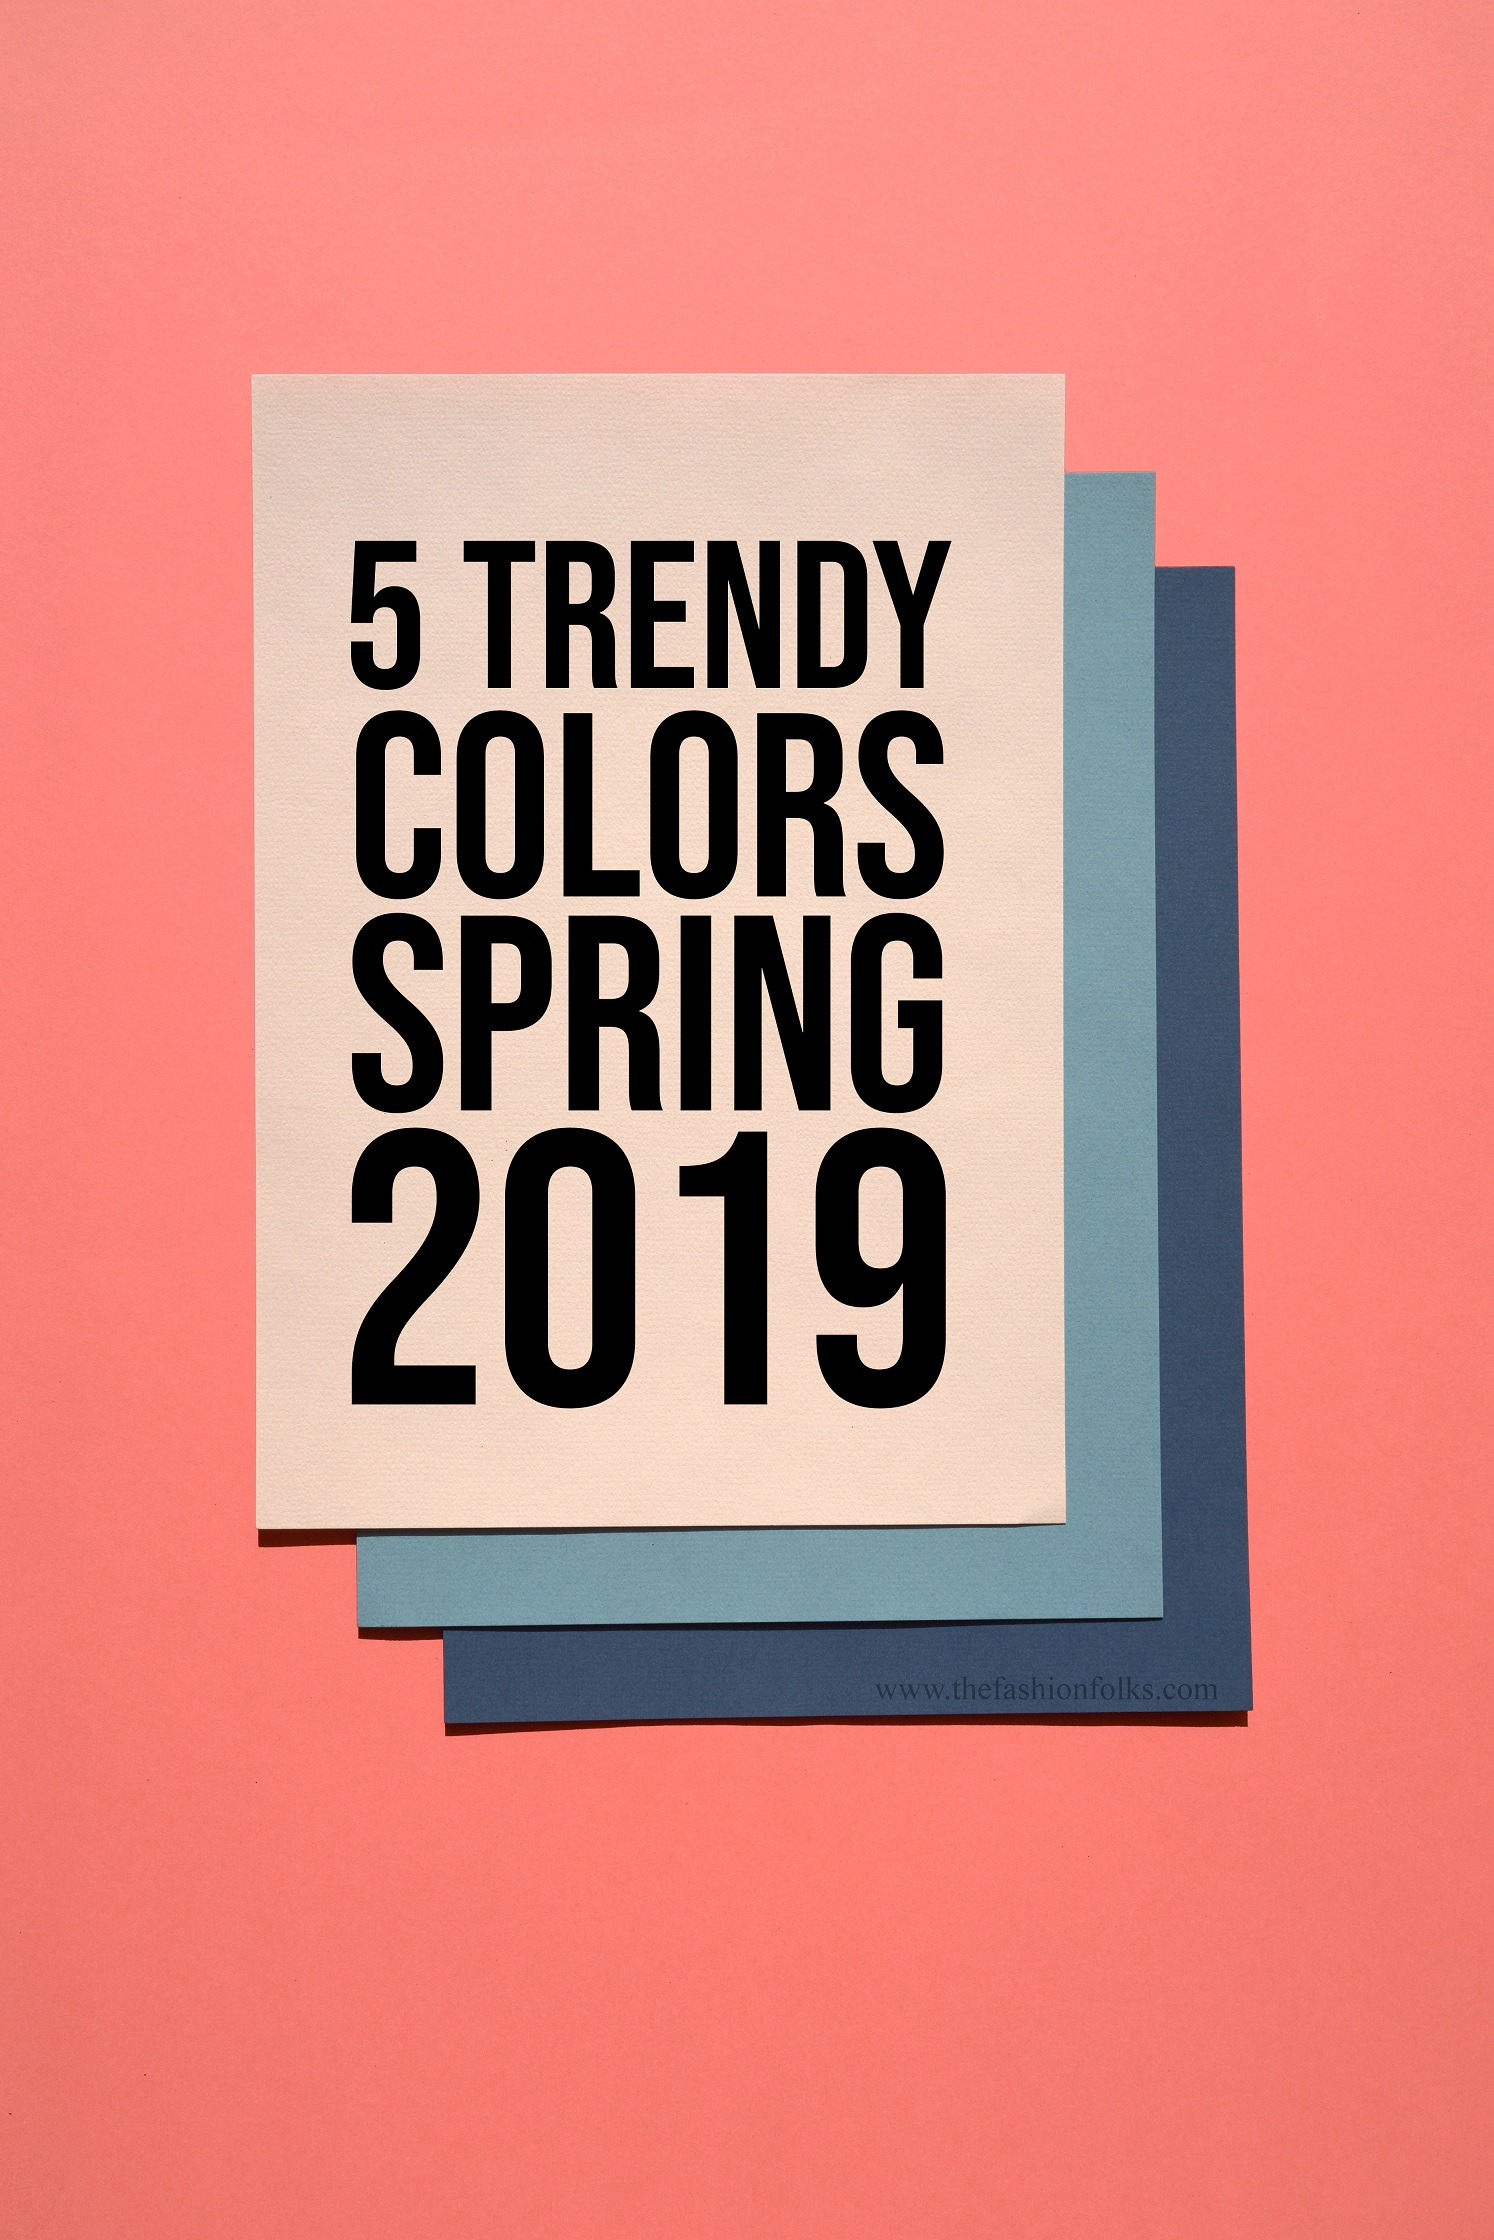 5 Trendy Colors Spring 2019